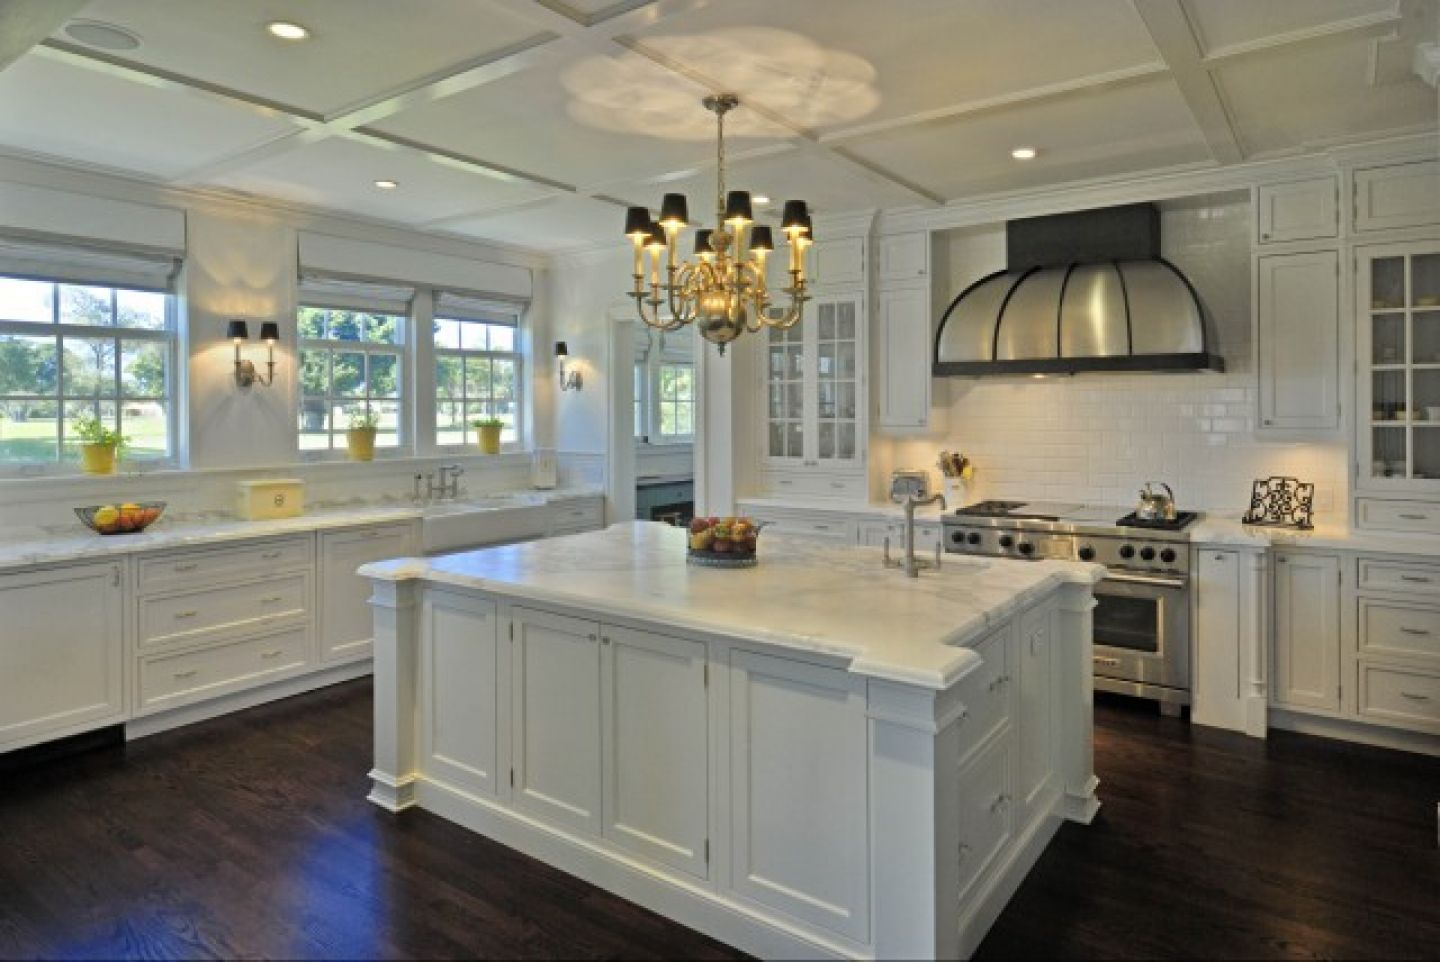 Appealing Furniture Using White Cabinets Kitche also Lurring Chandelier Decor